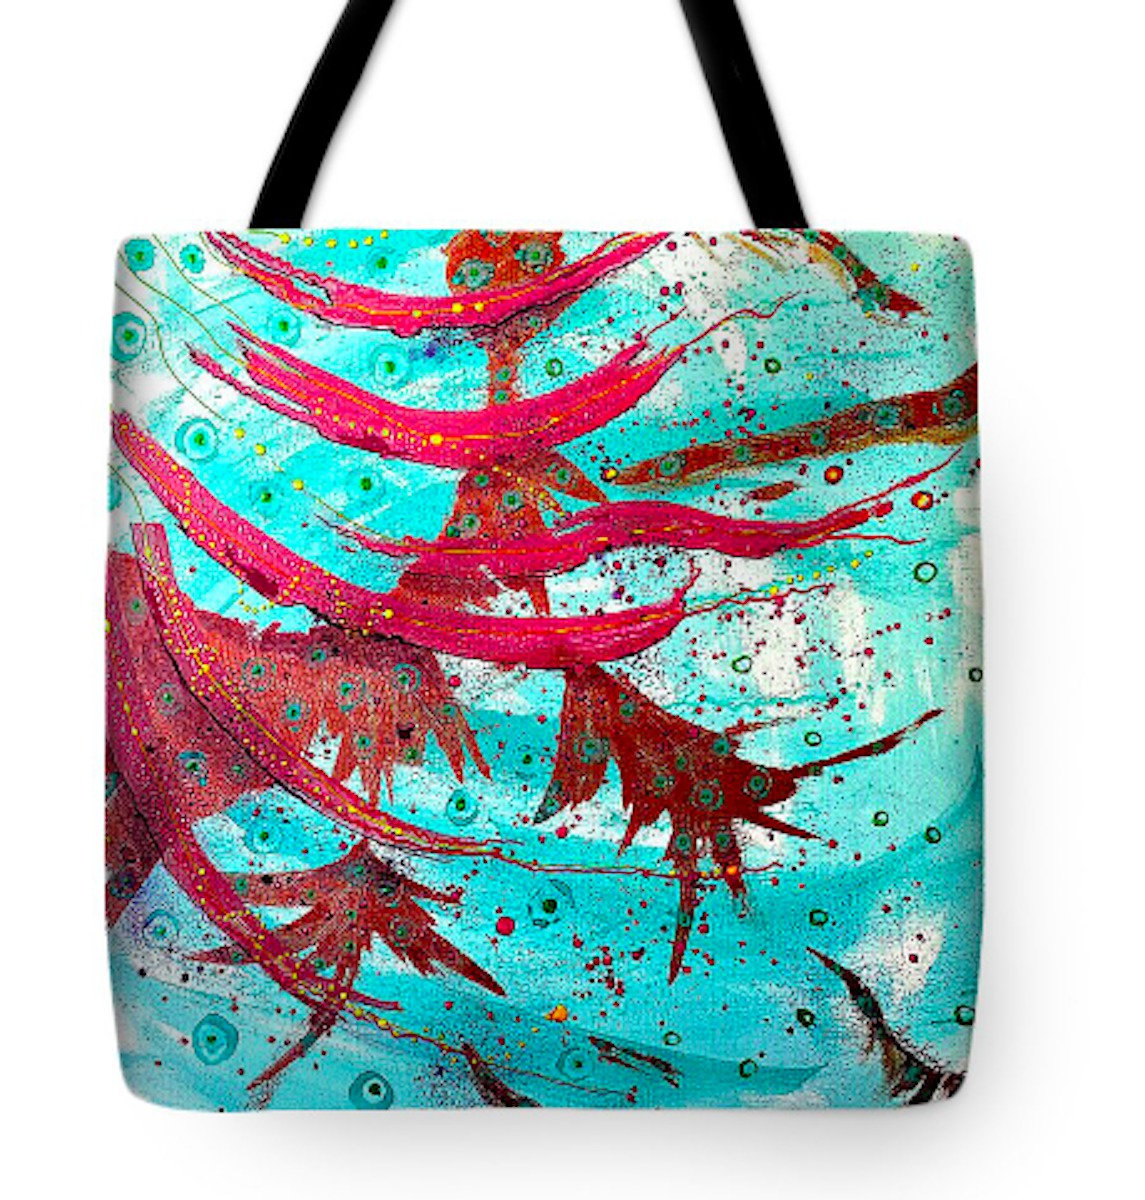 Flowing Tote Bag (large view)